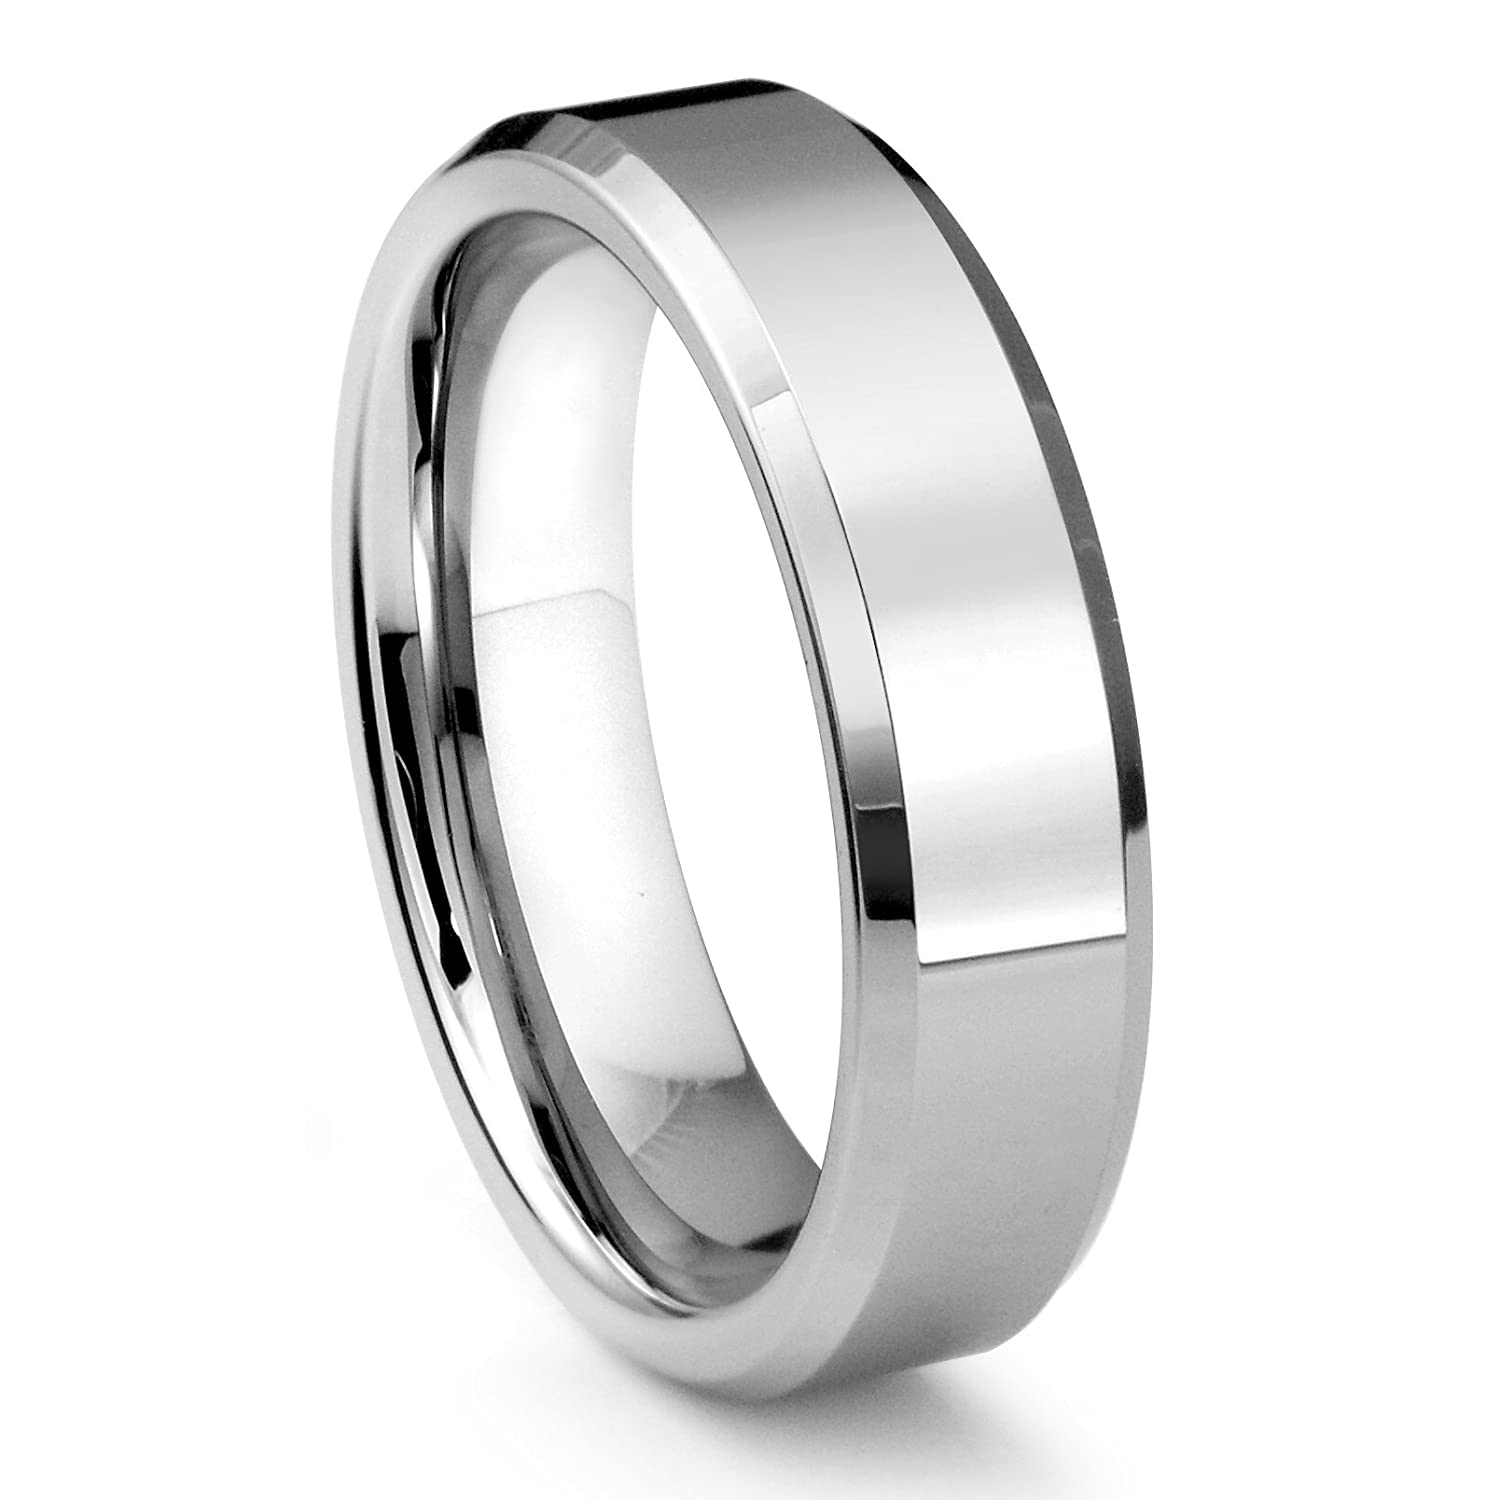 men dhgate com jewelry carbide for bands black silver from product chriswuyue wedding ring tungsten s rings fashion